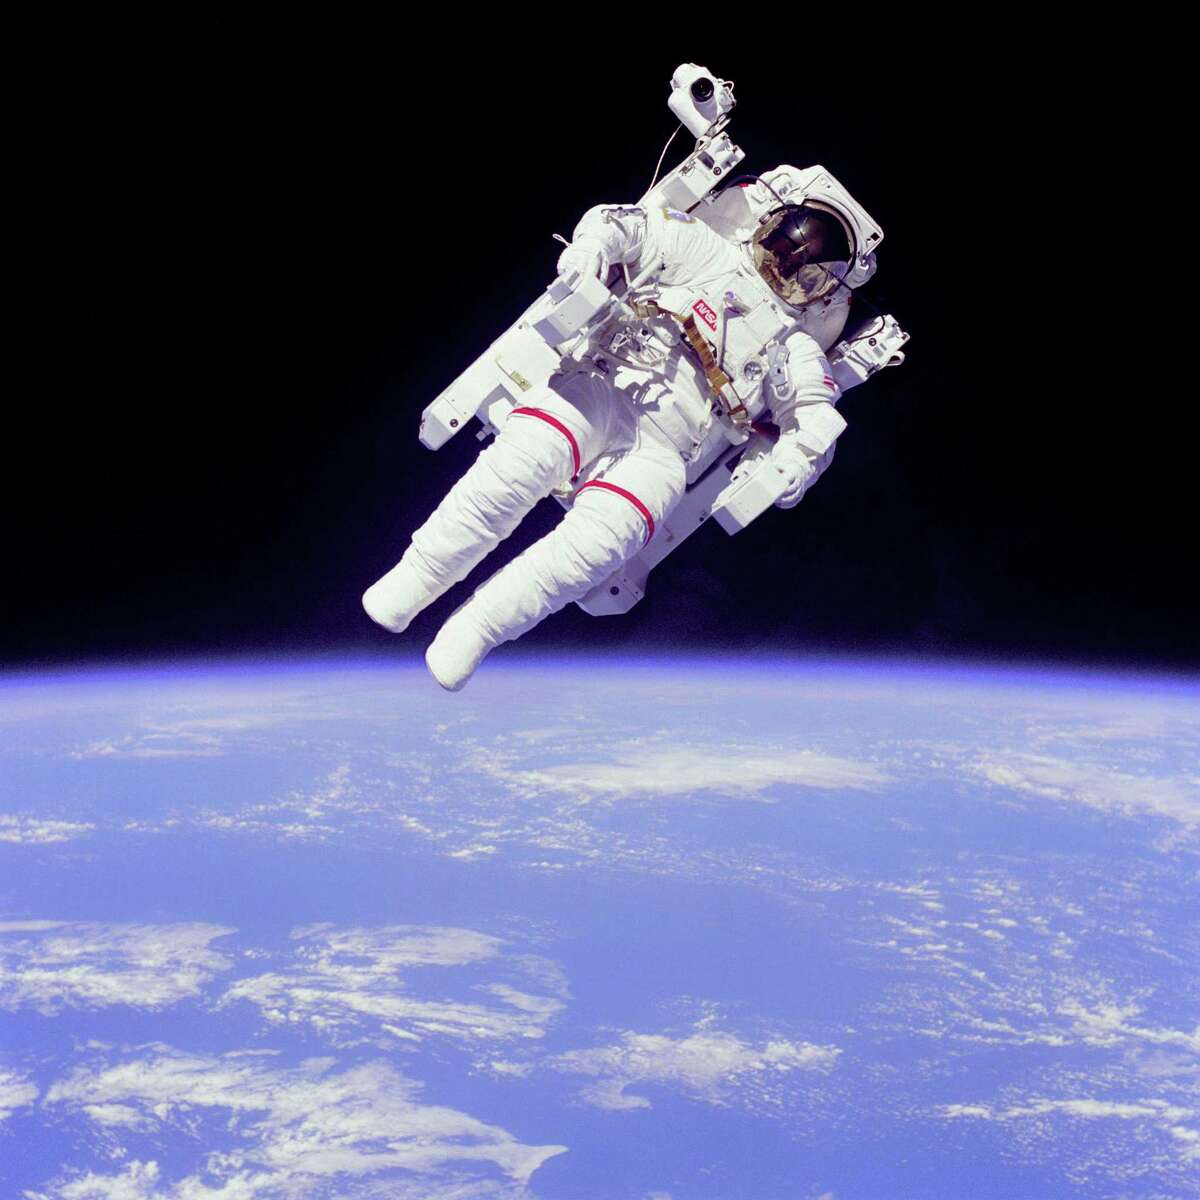 Mission Specialist Bruce McCandless II ventured further away from the confines and safety of his ship than any previous astronaut ever had in 1984. The space first was made possible by the Manned Manuevering Unit or MMU, a nitrogen jet propelled backpack. After a series of test maneuvers inside and above Challenger's payload bay, McCandless went